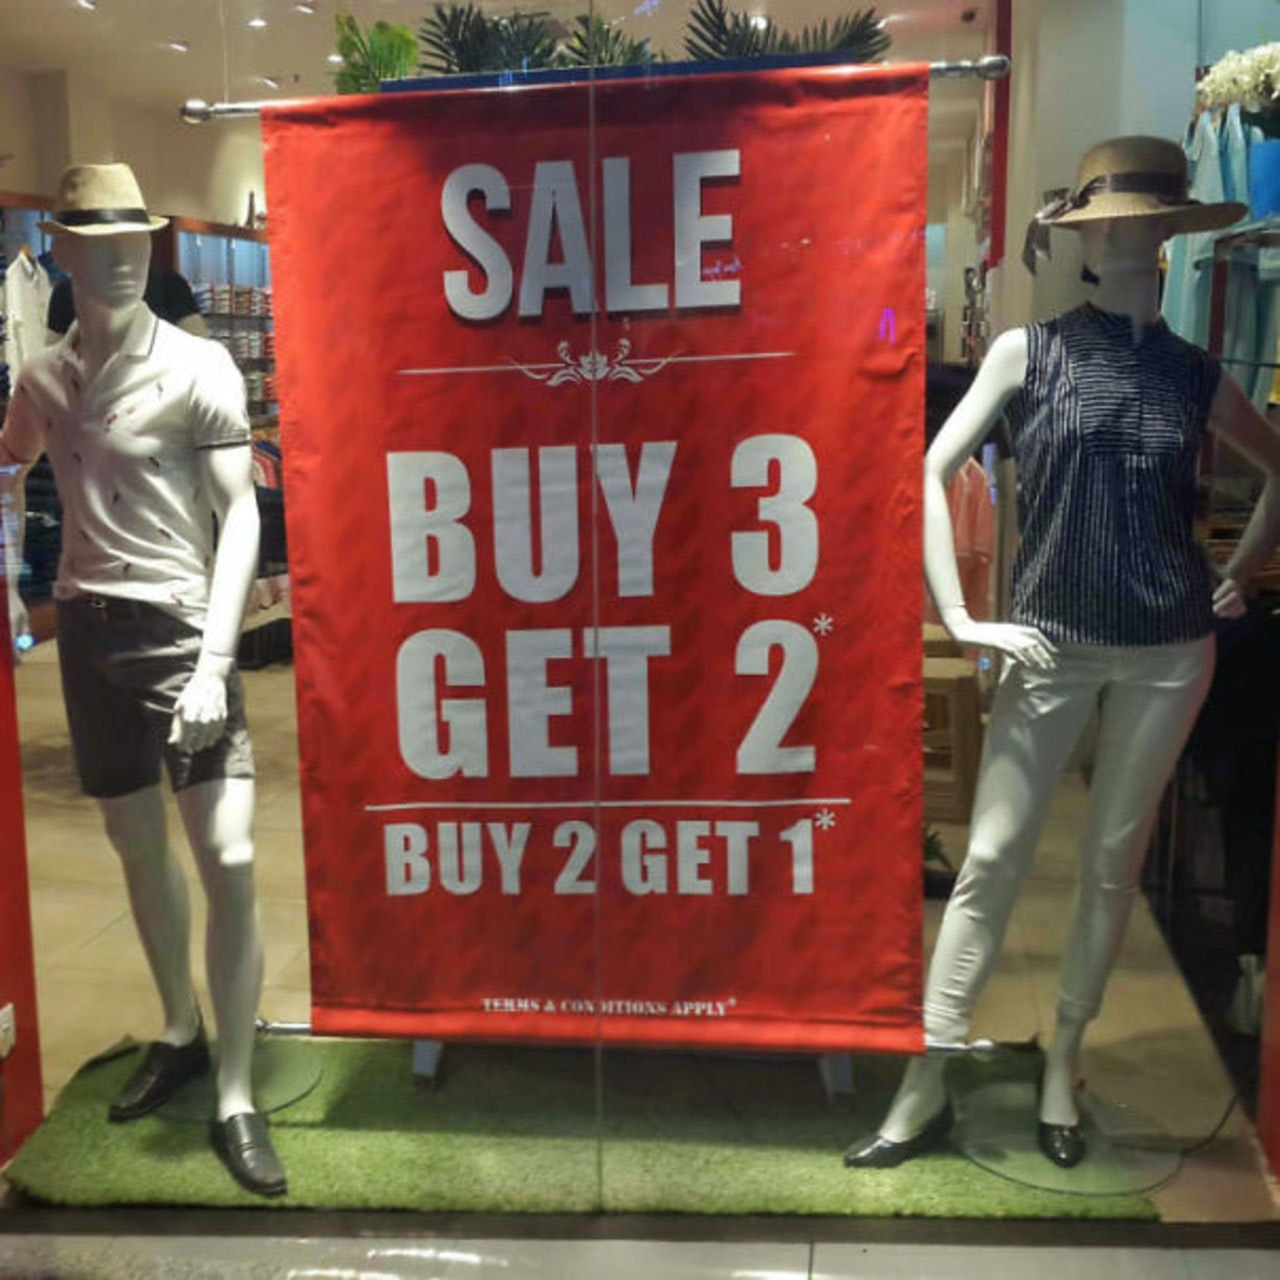 Sale Buy 2 Get 1 design fail